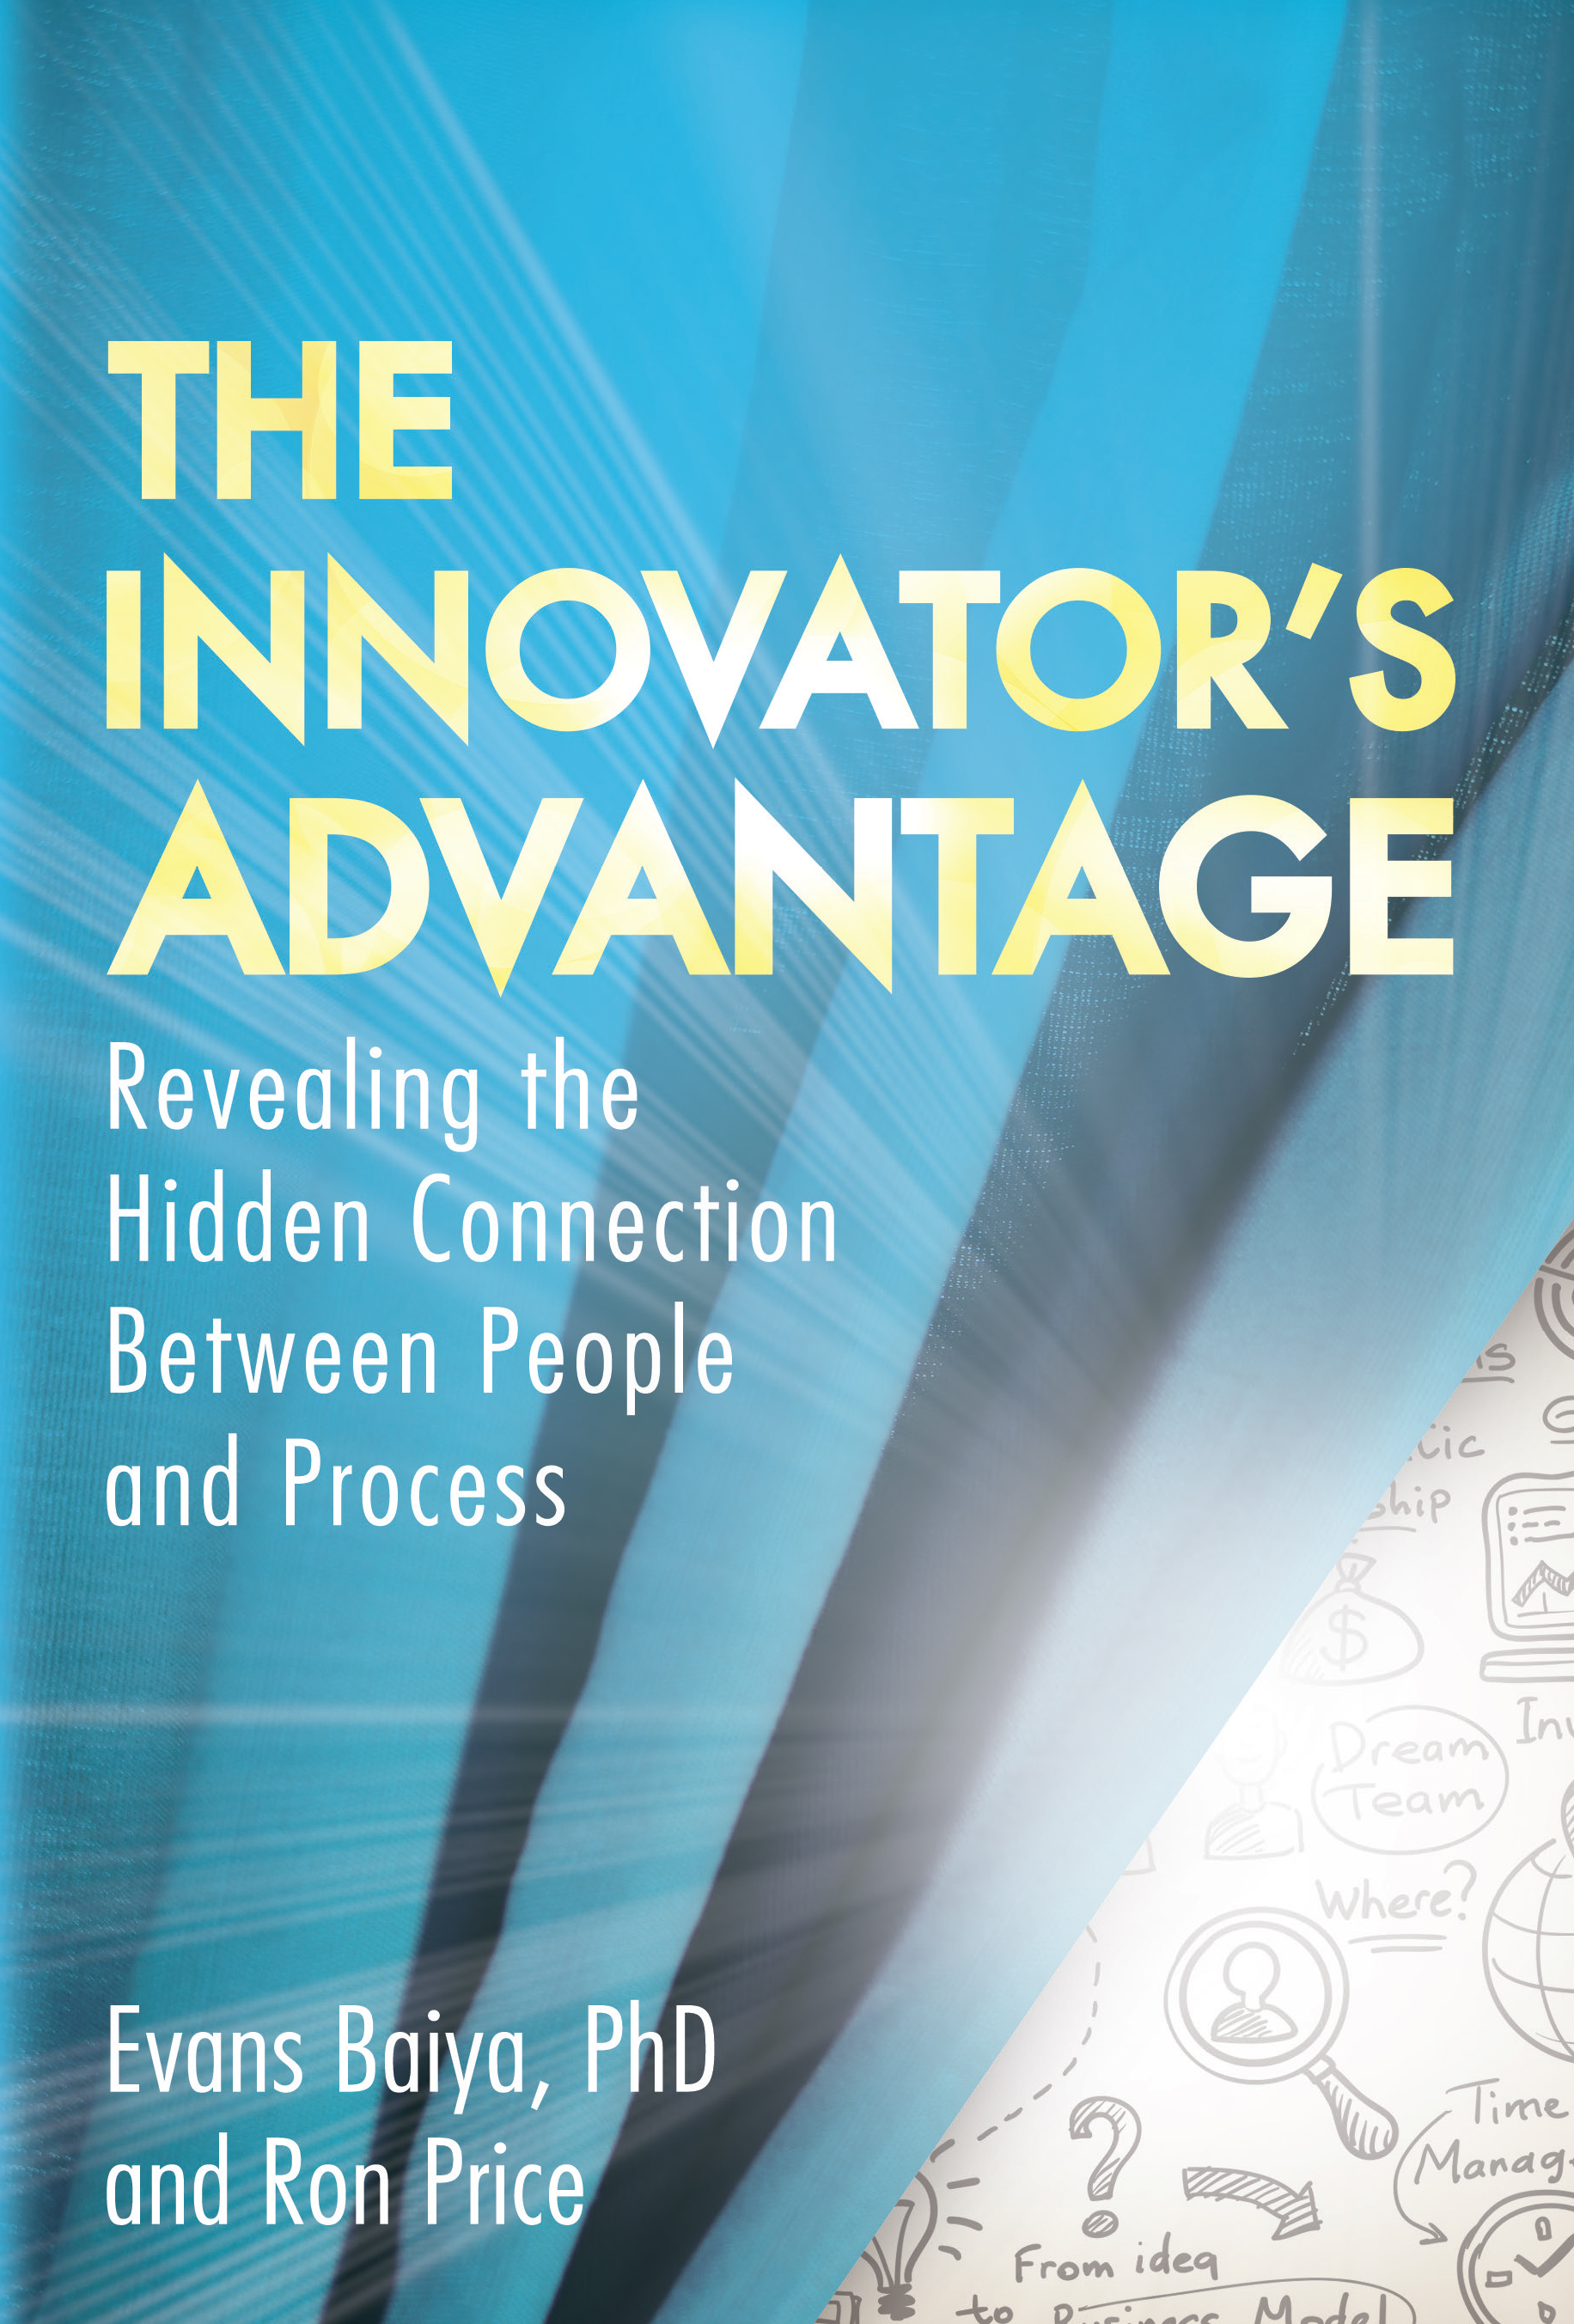 The Innovator's Advantage: Revealing the Hidden Connection Between People and Process